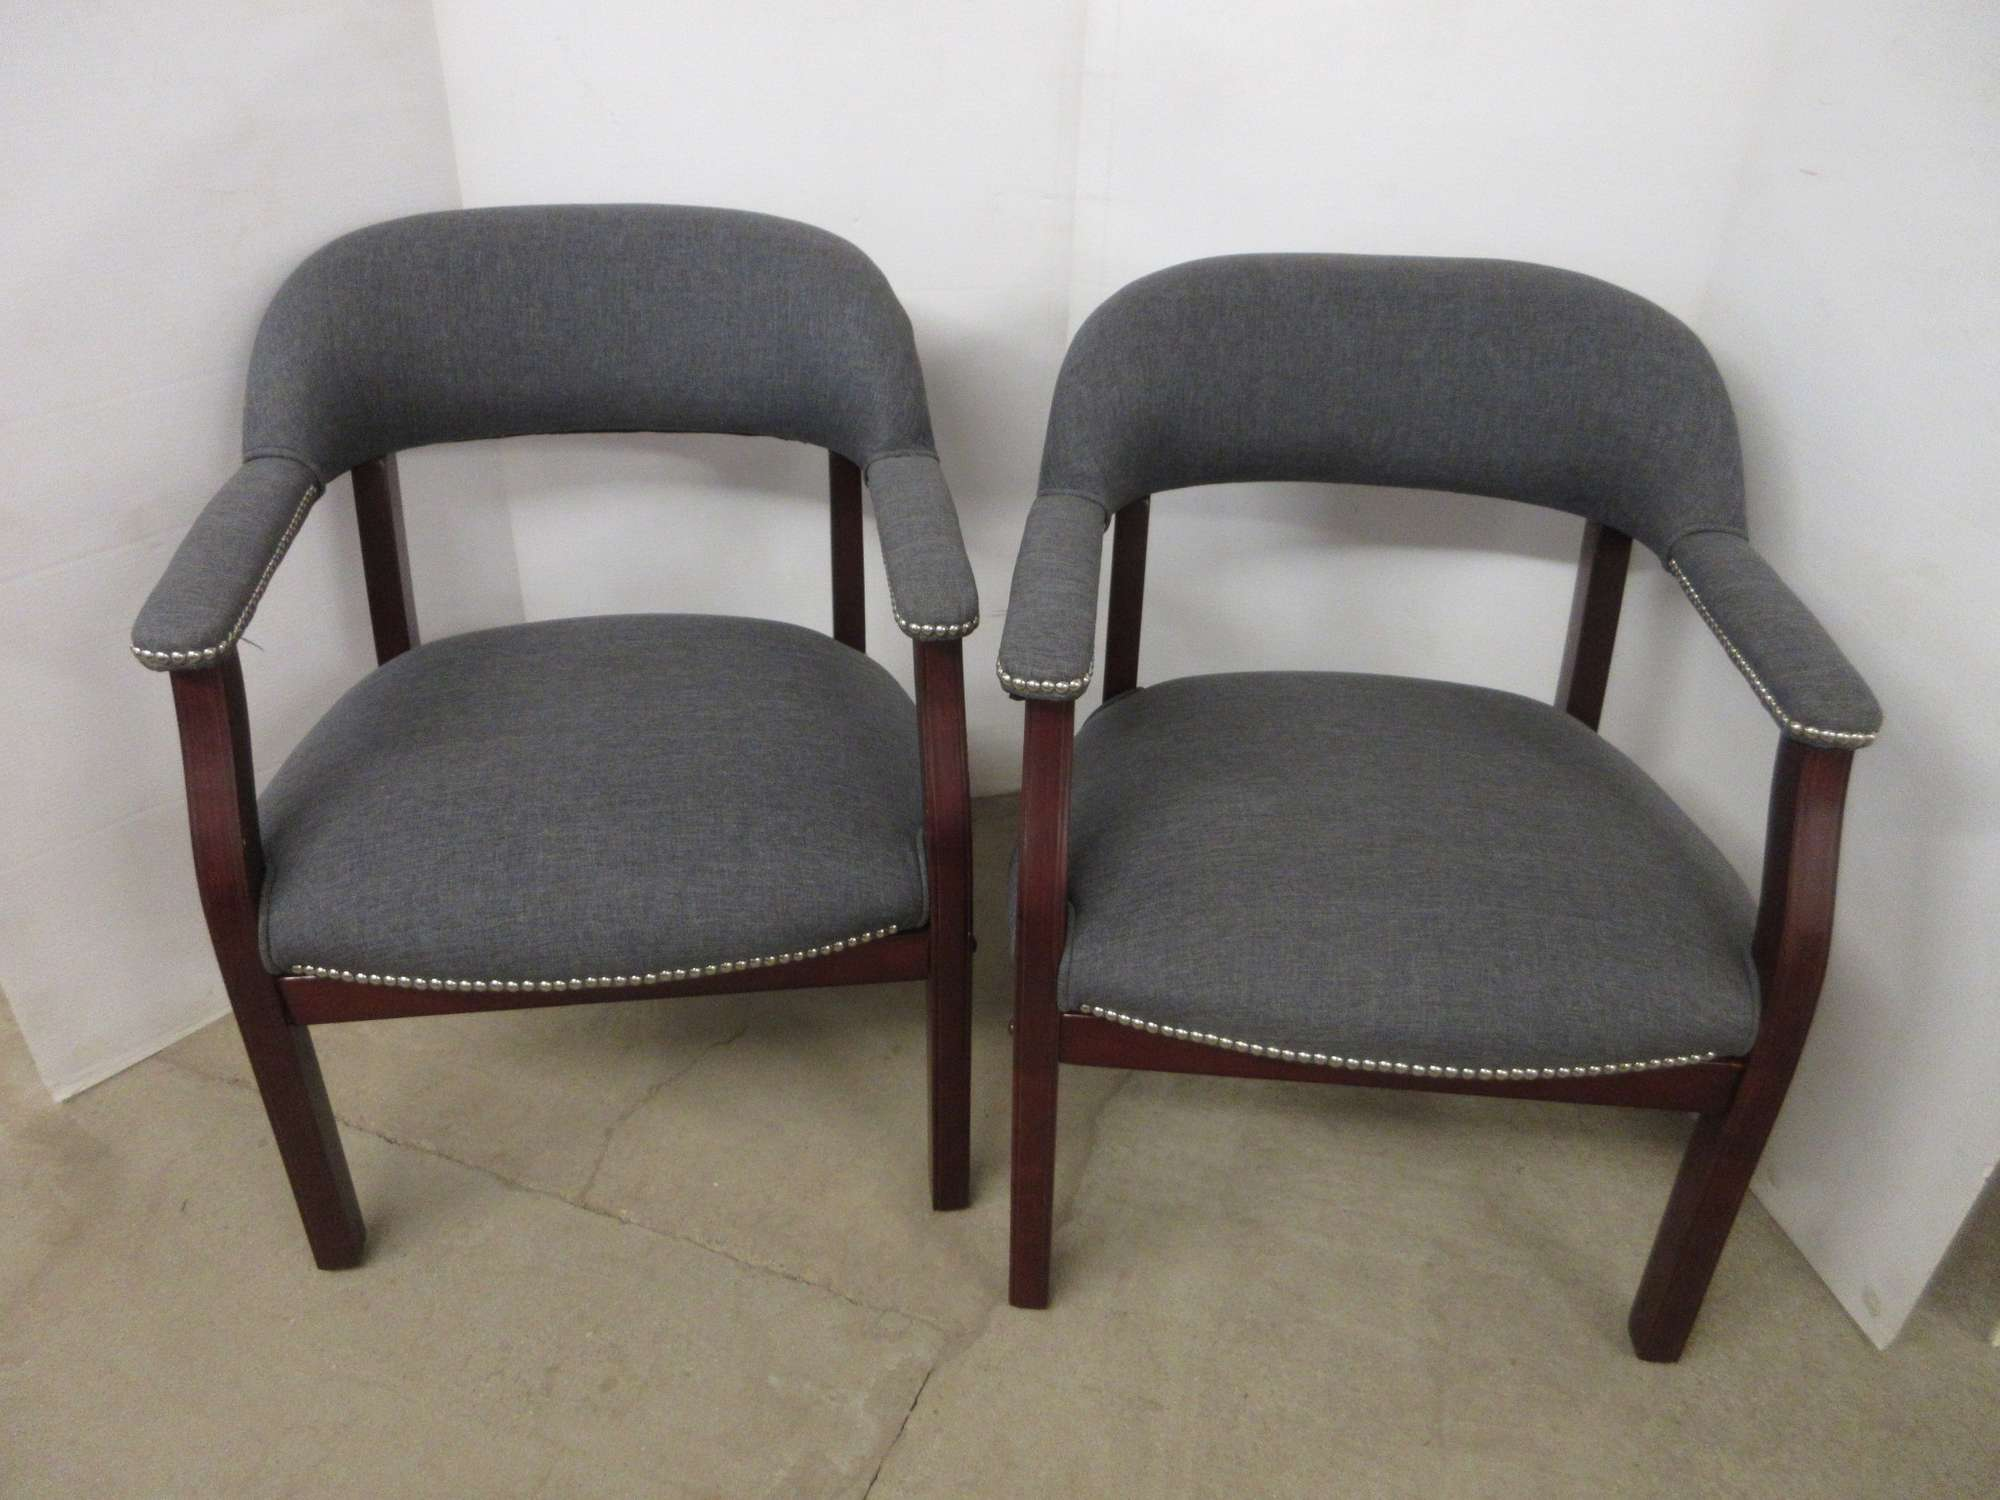 Albrecht Auctions | (2) Deluxe Office Chairs